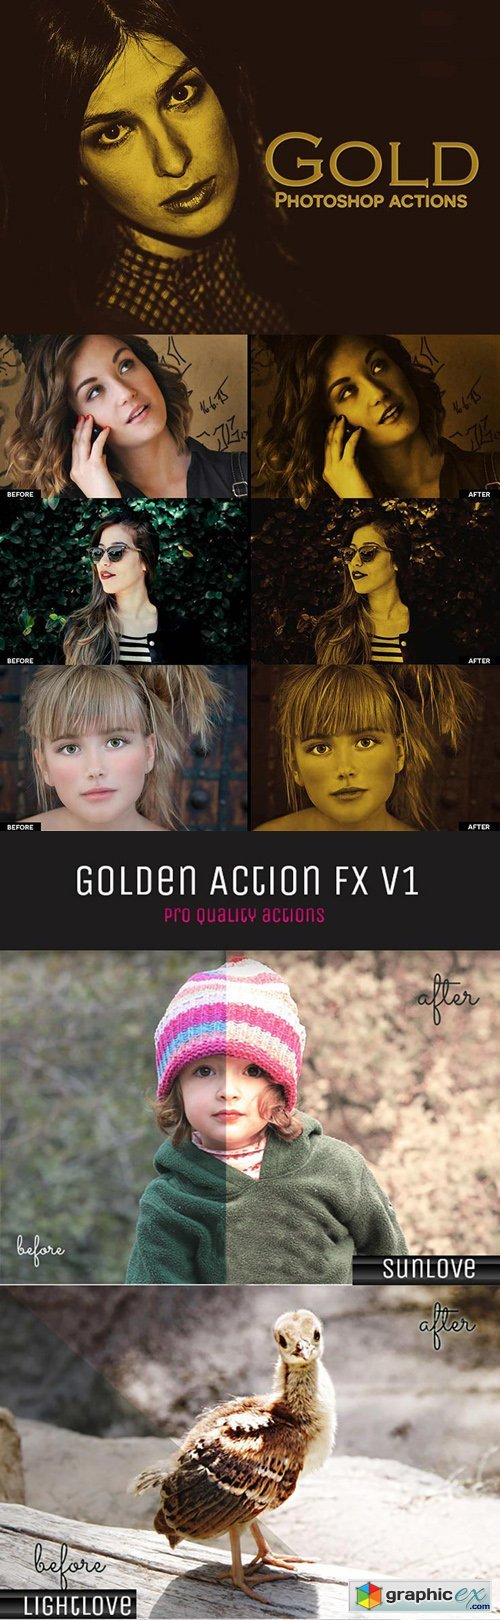 5 Golden Photoshop Actions (RAW/JPEG)